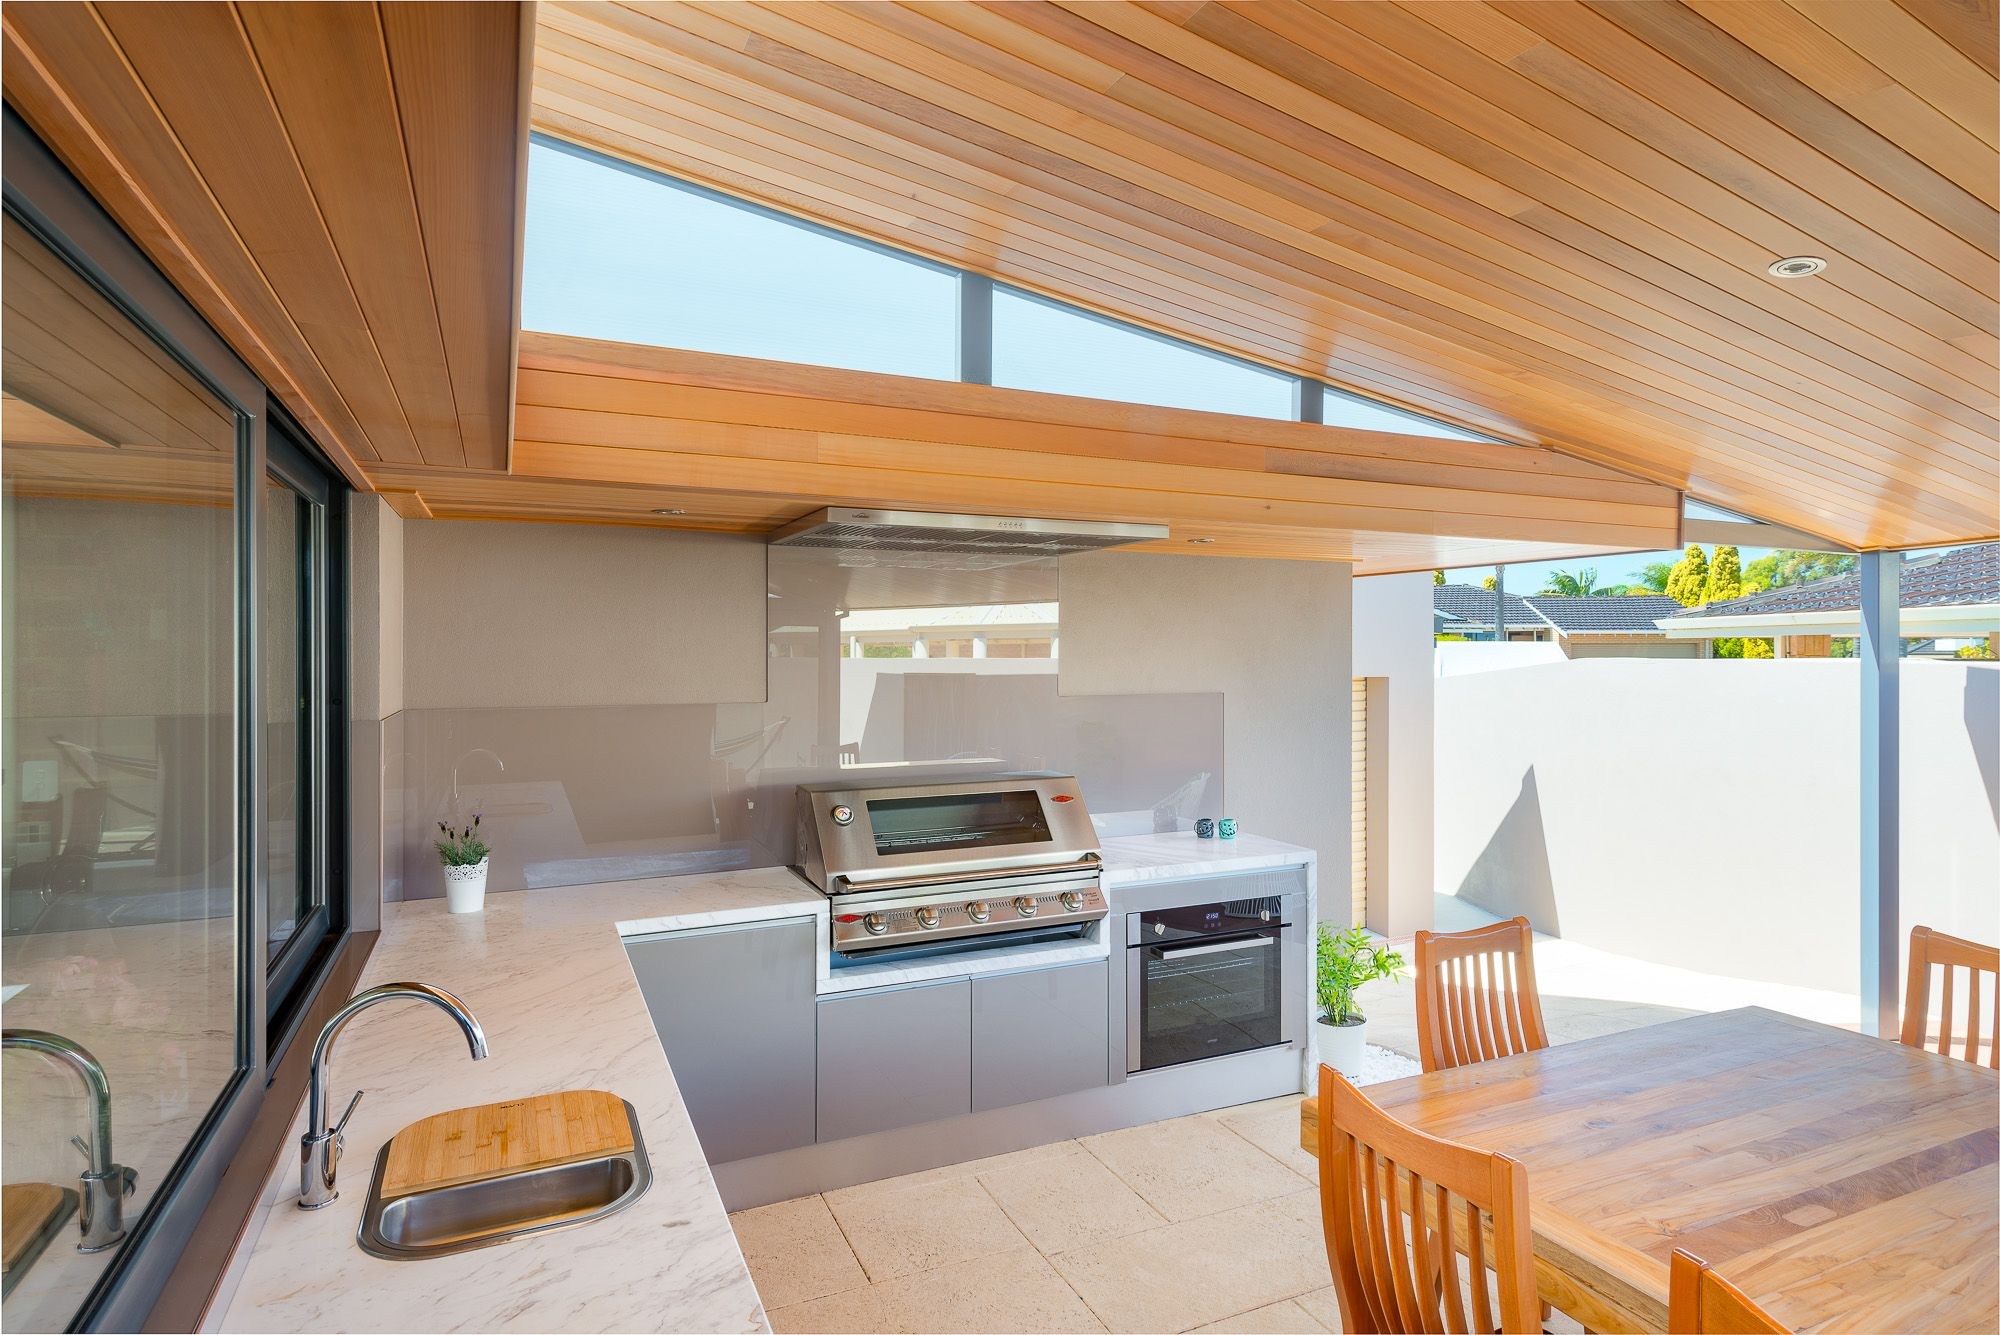 Perthus leading outdoor kitchen installers with showrooms in osborne